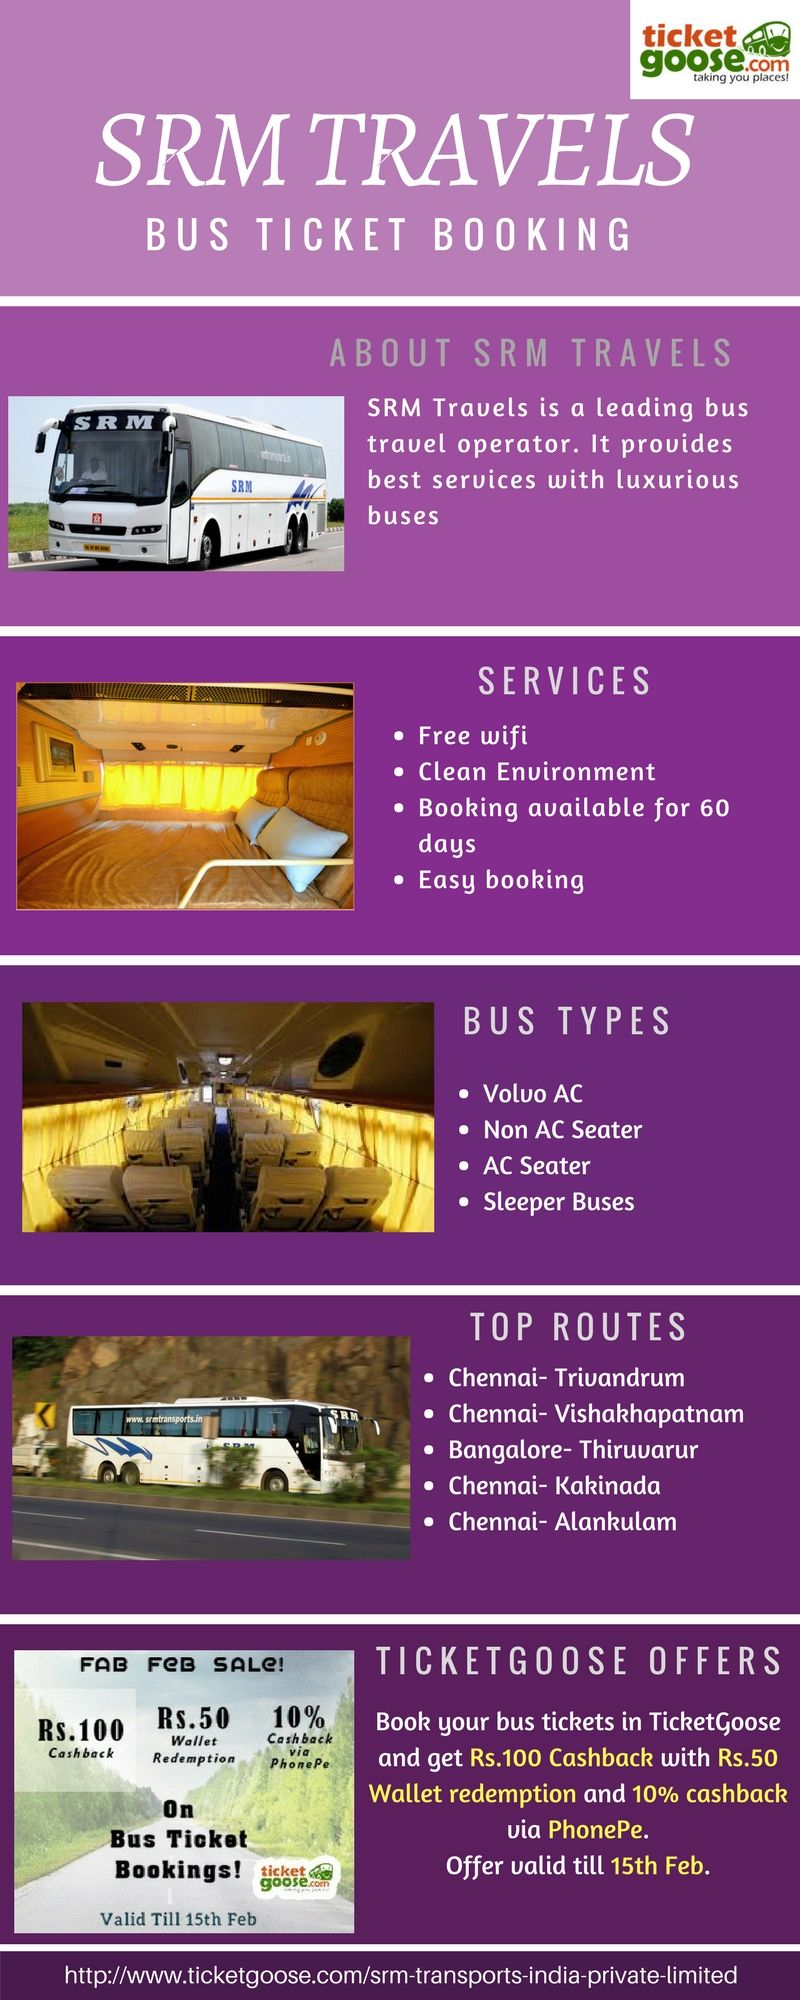 Pin By Ticketgoose On Srm Travels With Images Bus Tickets Bus